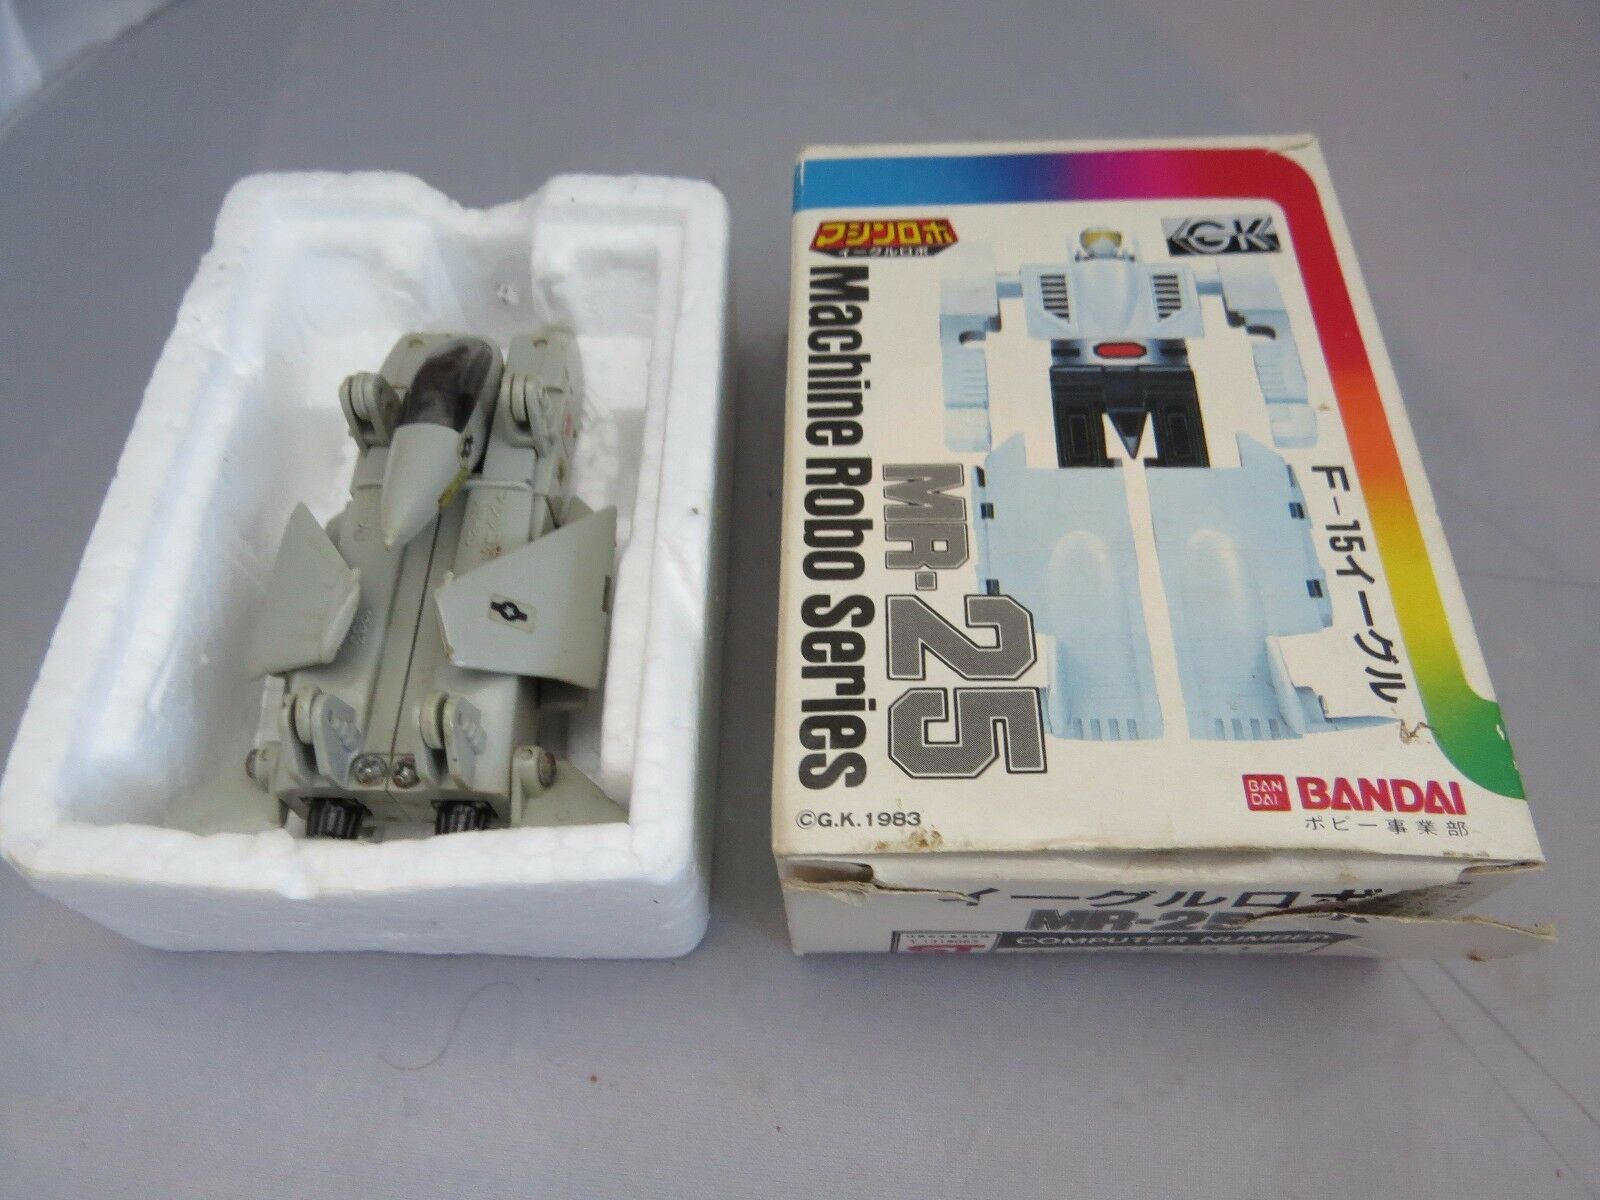 GOBOTS Micro Robots Micrgoldbots MR-29 Japan (Leader-1)